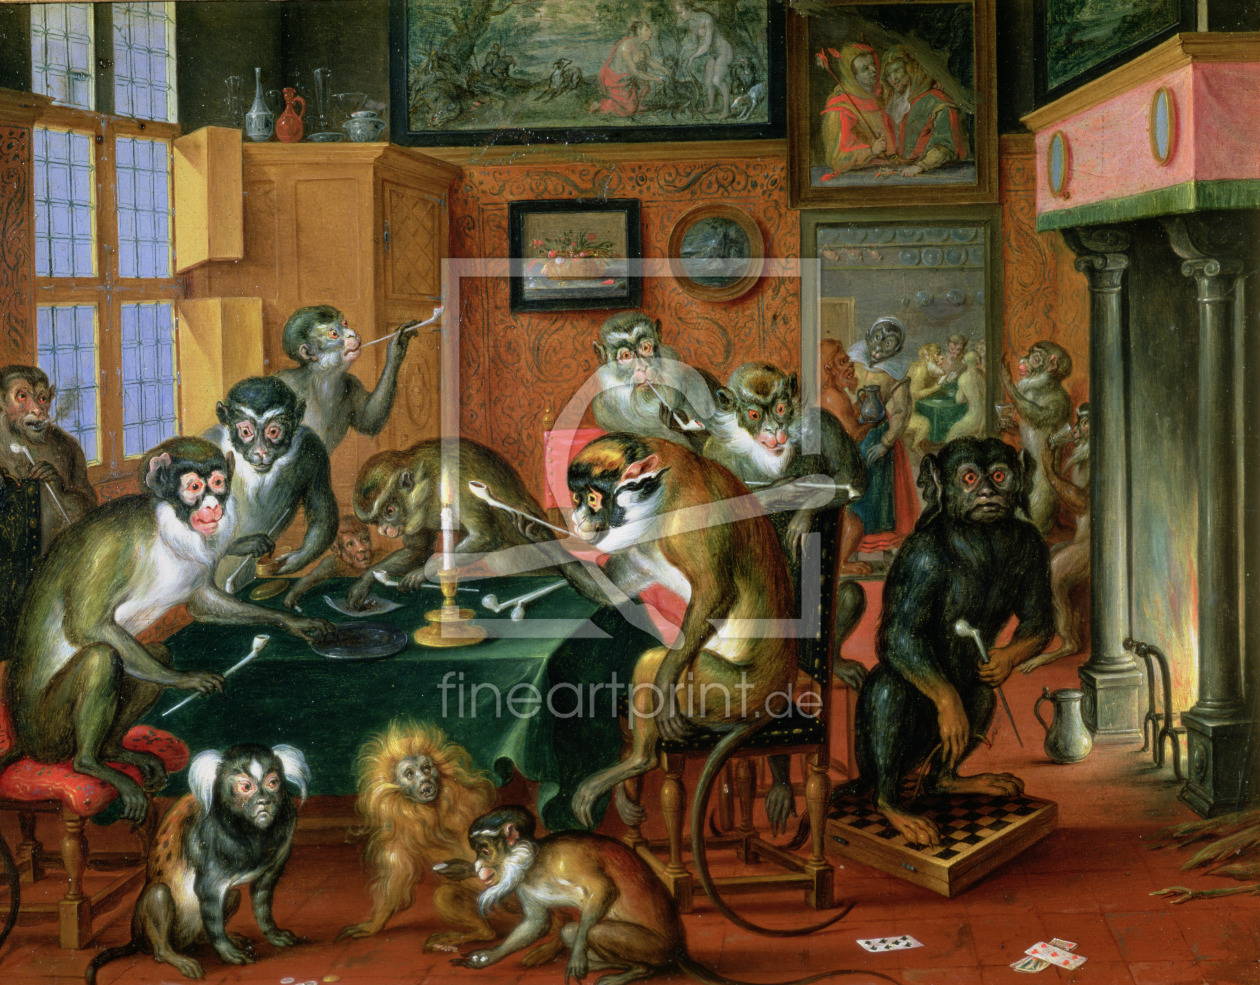 Bild-Nr.: 31002684 The Smoking Room with Monkeys erstellt von Teniers, Abraham